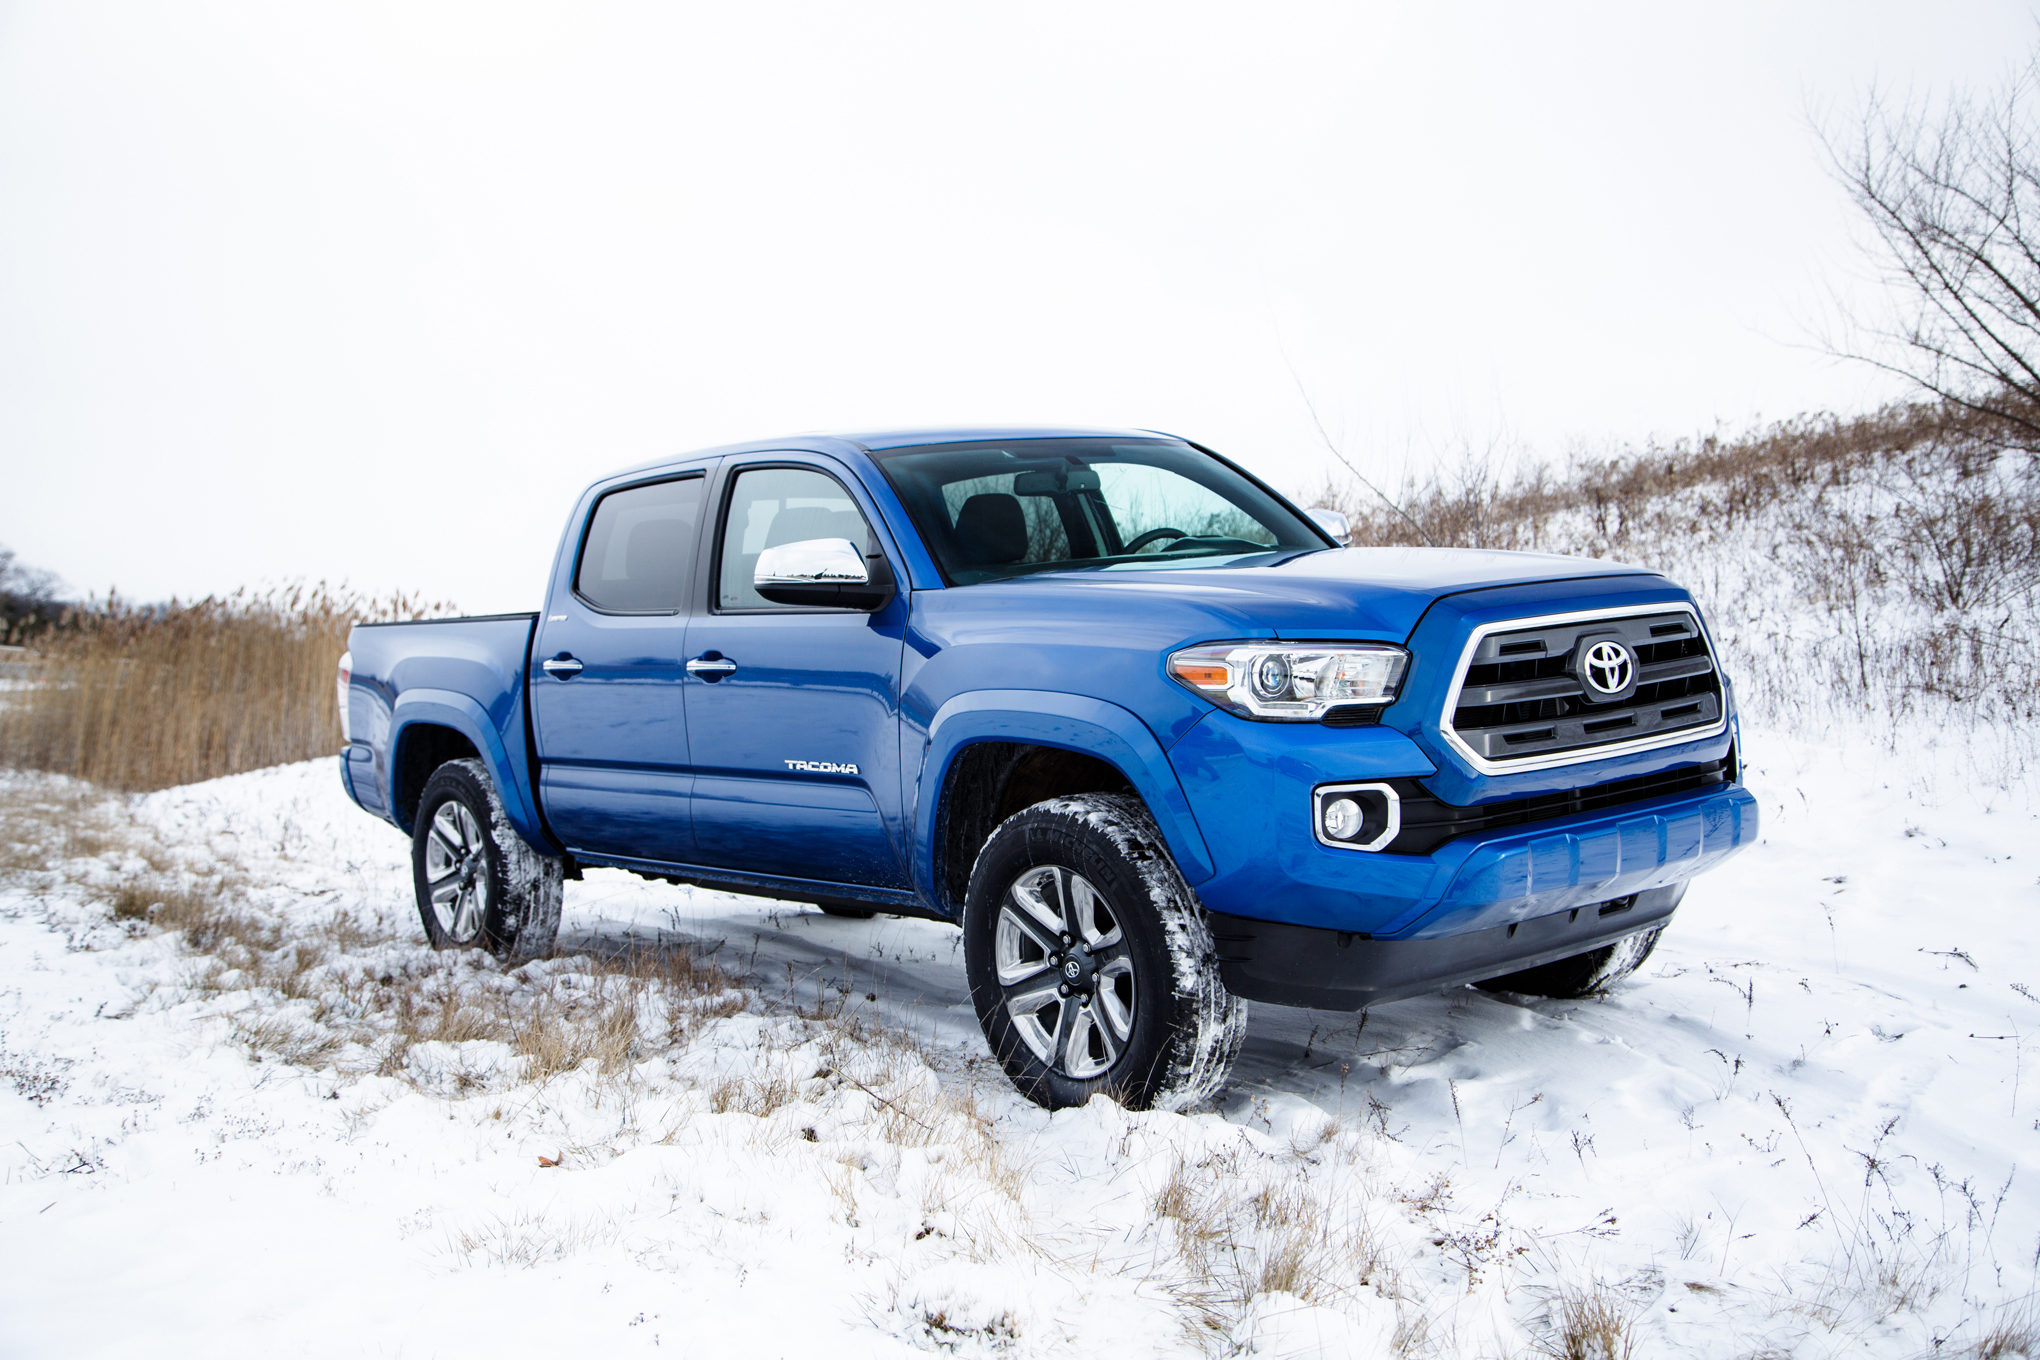 2016 Toyota Tacoma Exterior Preview (Photo 2 of 10)